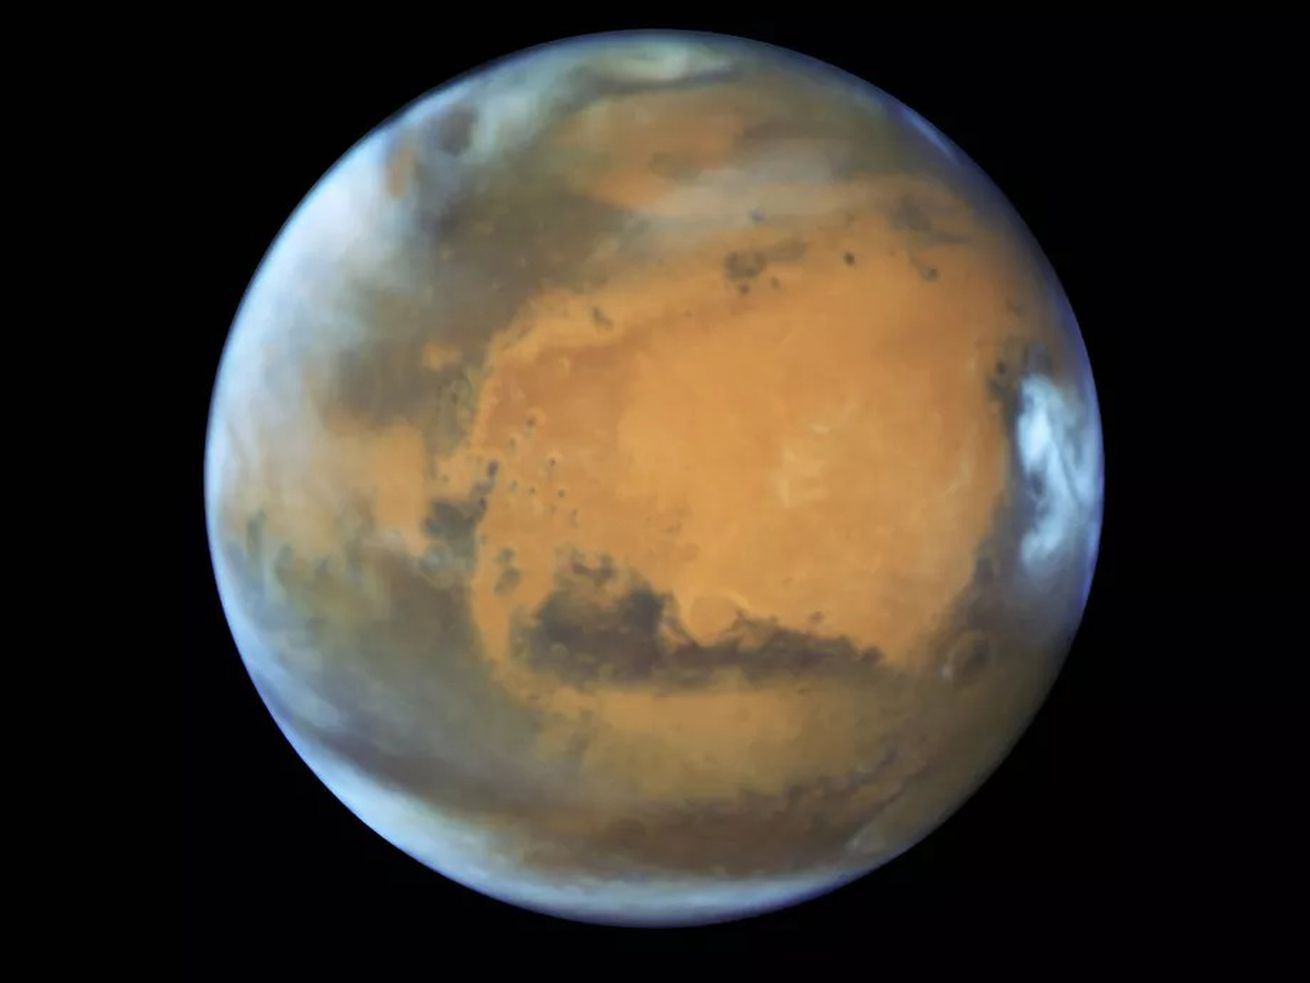 This is Mars. Definitely not the moon.